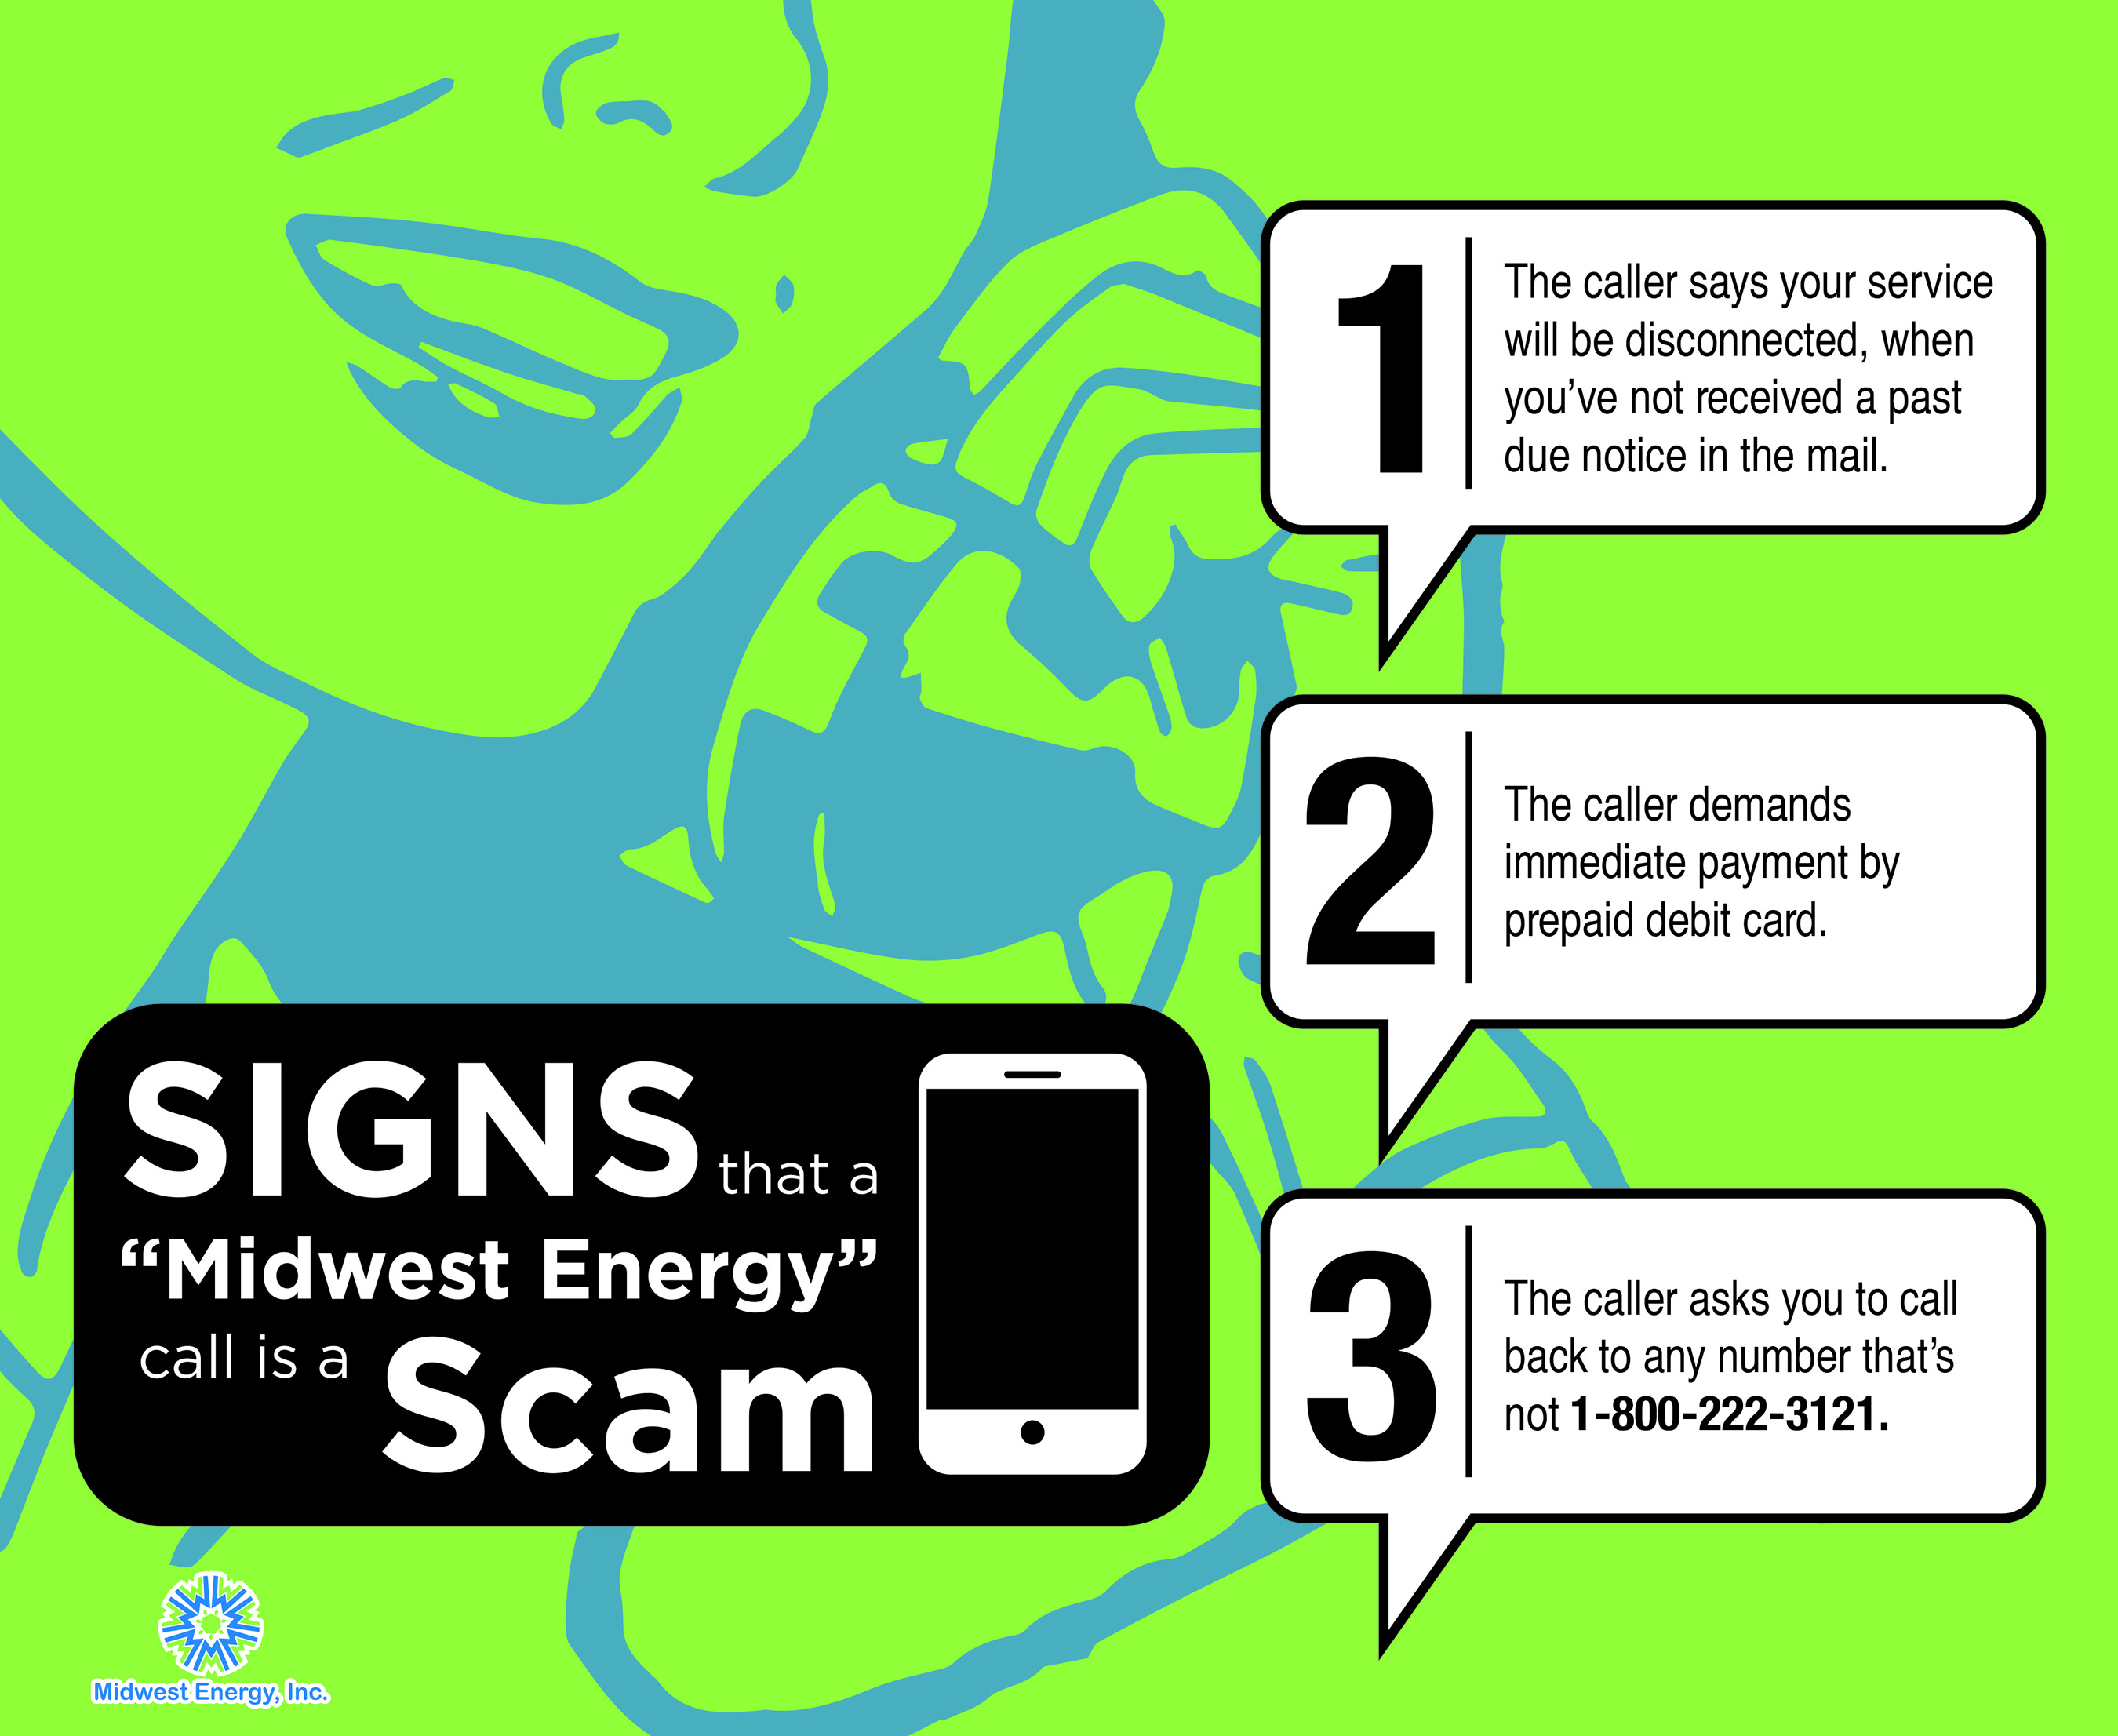 A graphic describing three warning sings that an energy scammer is calling you.  First, you've never received a past due notice in the mail; second, they demand payment by prepaid debit card; third, they ask you to call back a number other than 1-800-222-3121.  Any one of these three signs should tip you that you're talking to a scam artist.